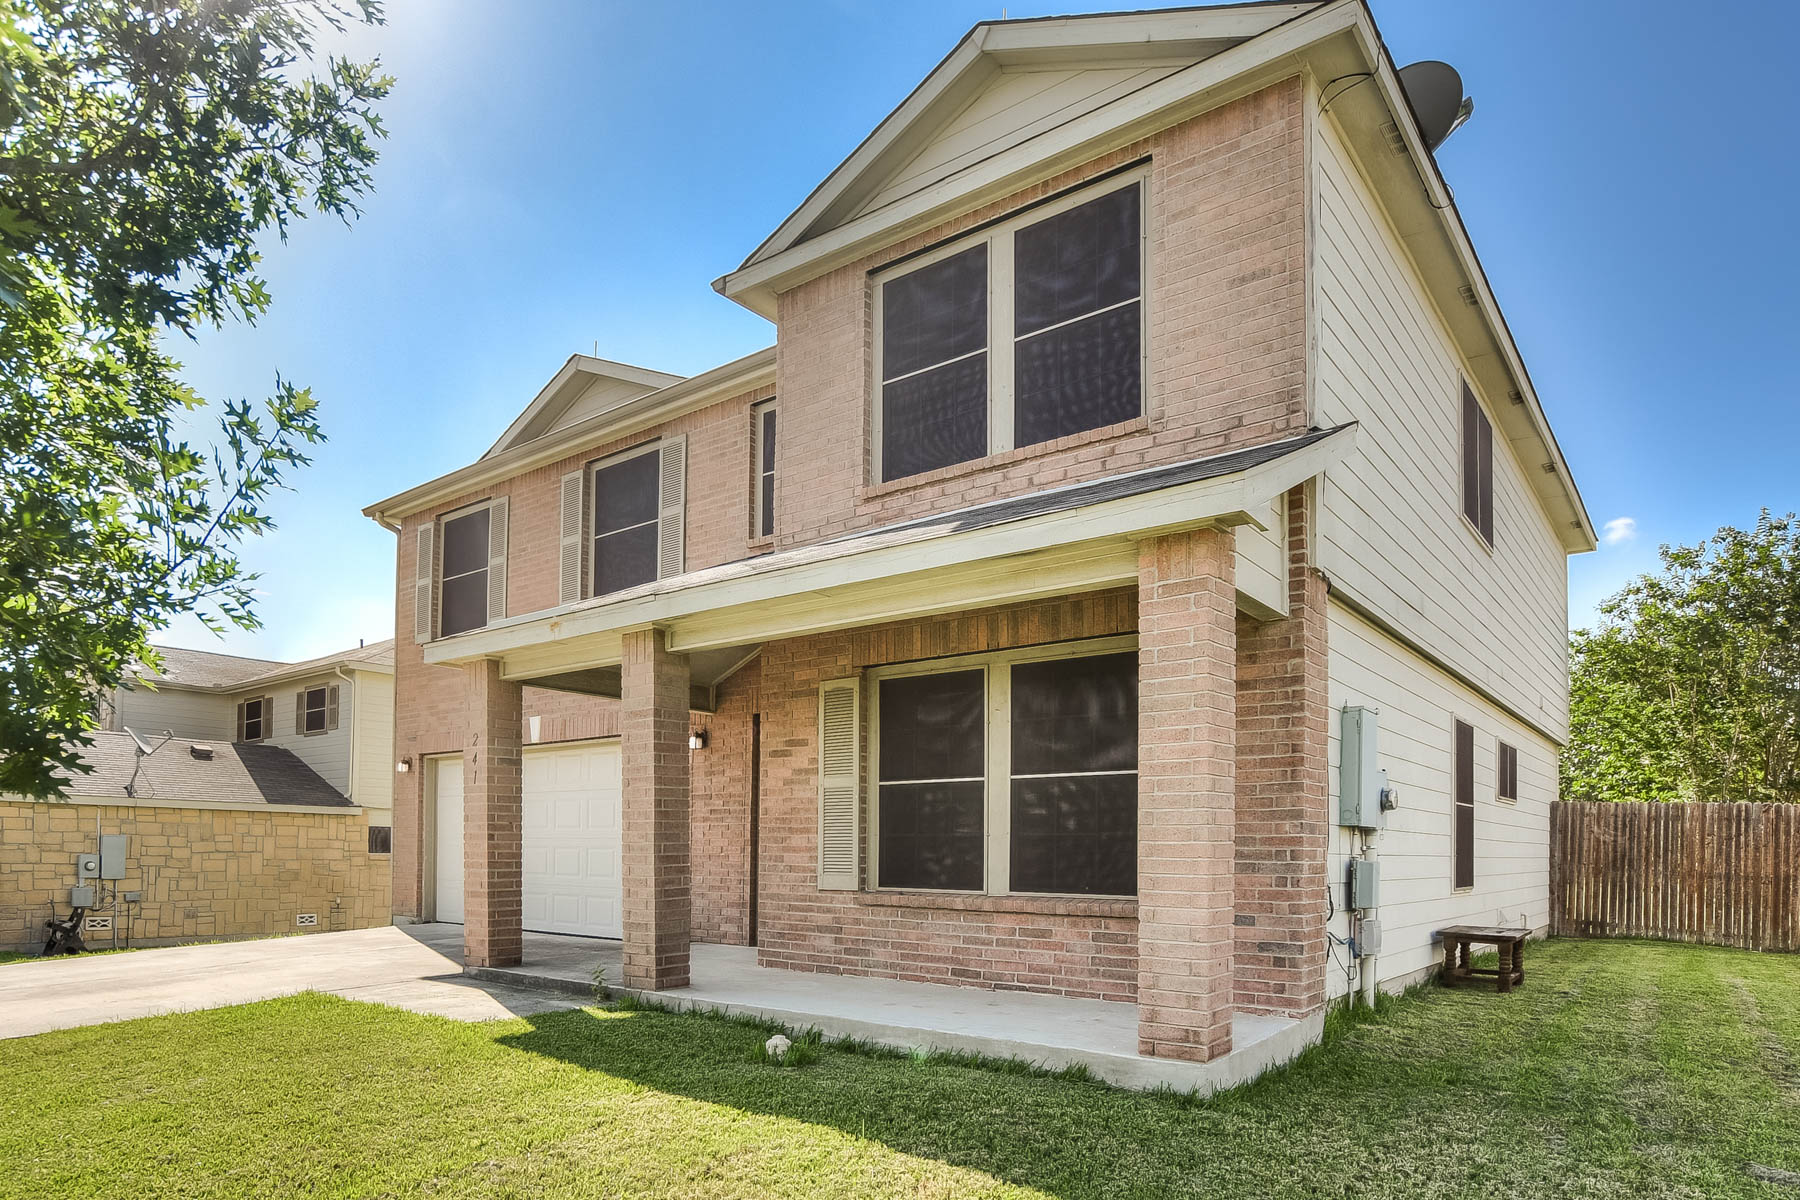 Single Family Home for Sale at Well Maintained Home in Enclave at Willow Pointe 241 Willow Run Cibolo, Texas 78108 United States